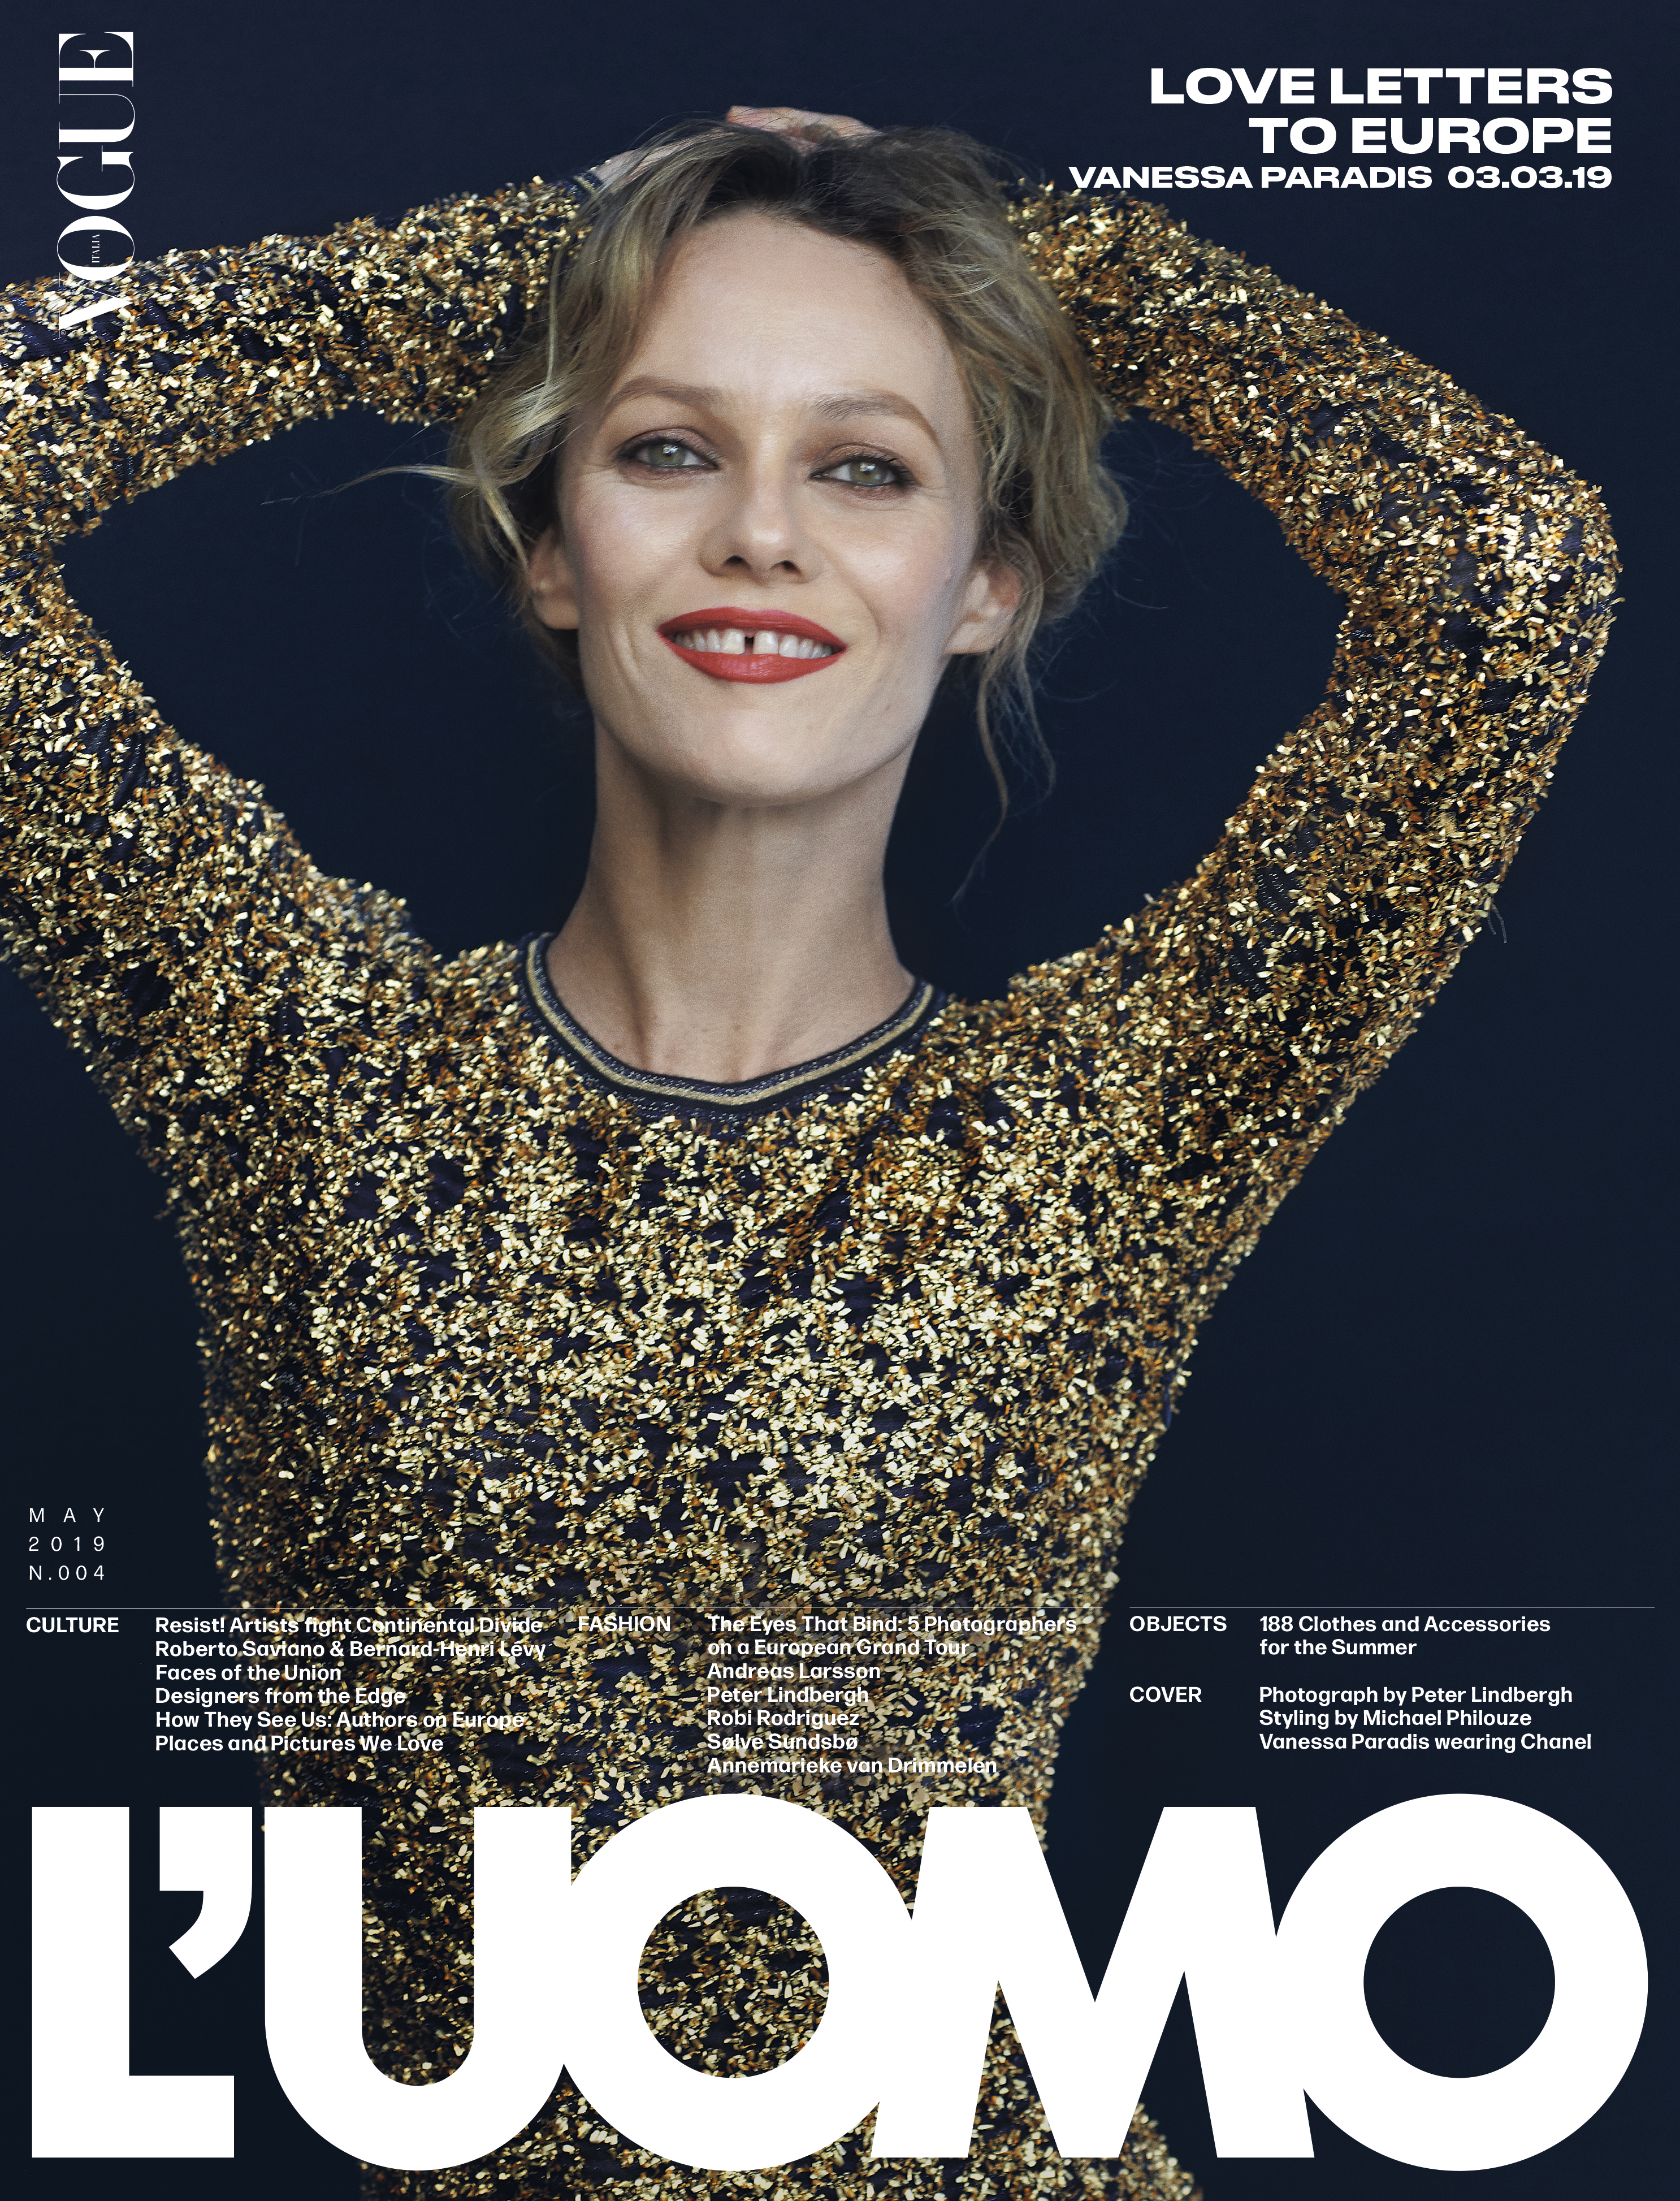 One of the seven covers of l'Uomo Vogue new issue dedicated to Europe